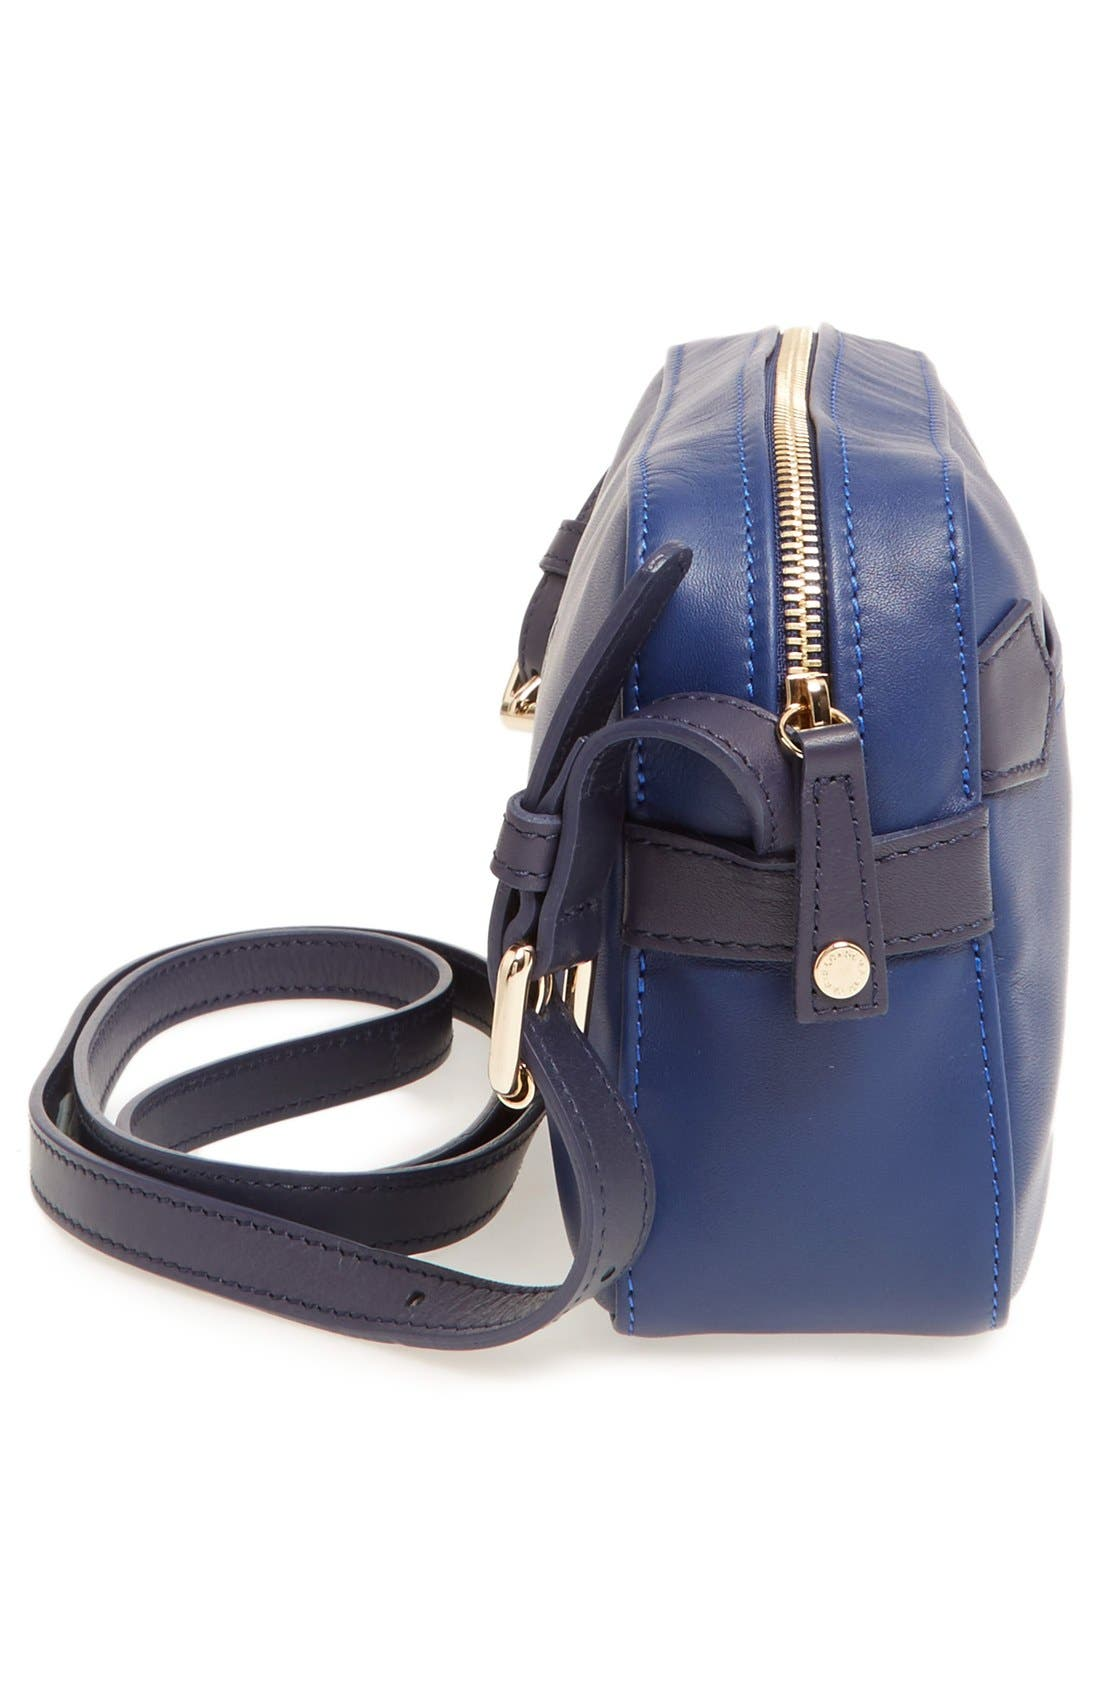 '2.0' Two-Tone Leather Crossbody Bag,                             Alternate thumbnail 4, color,                             Blue/ Navy